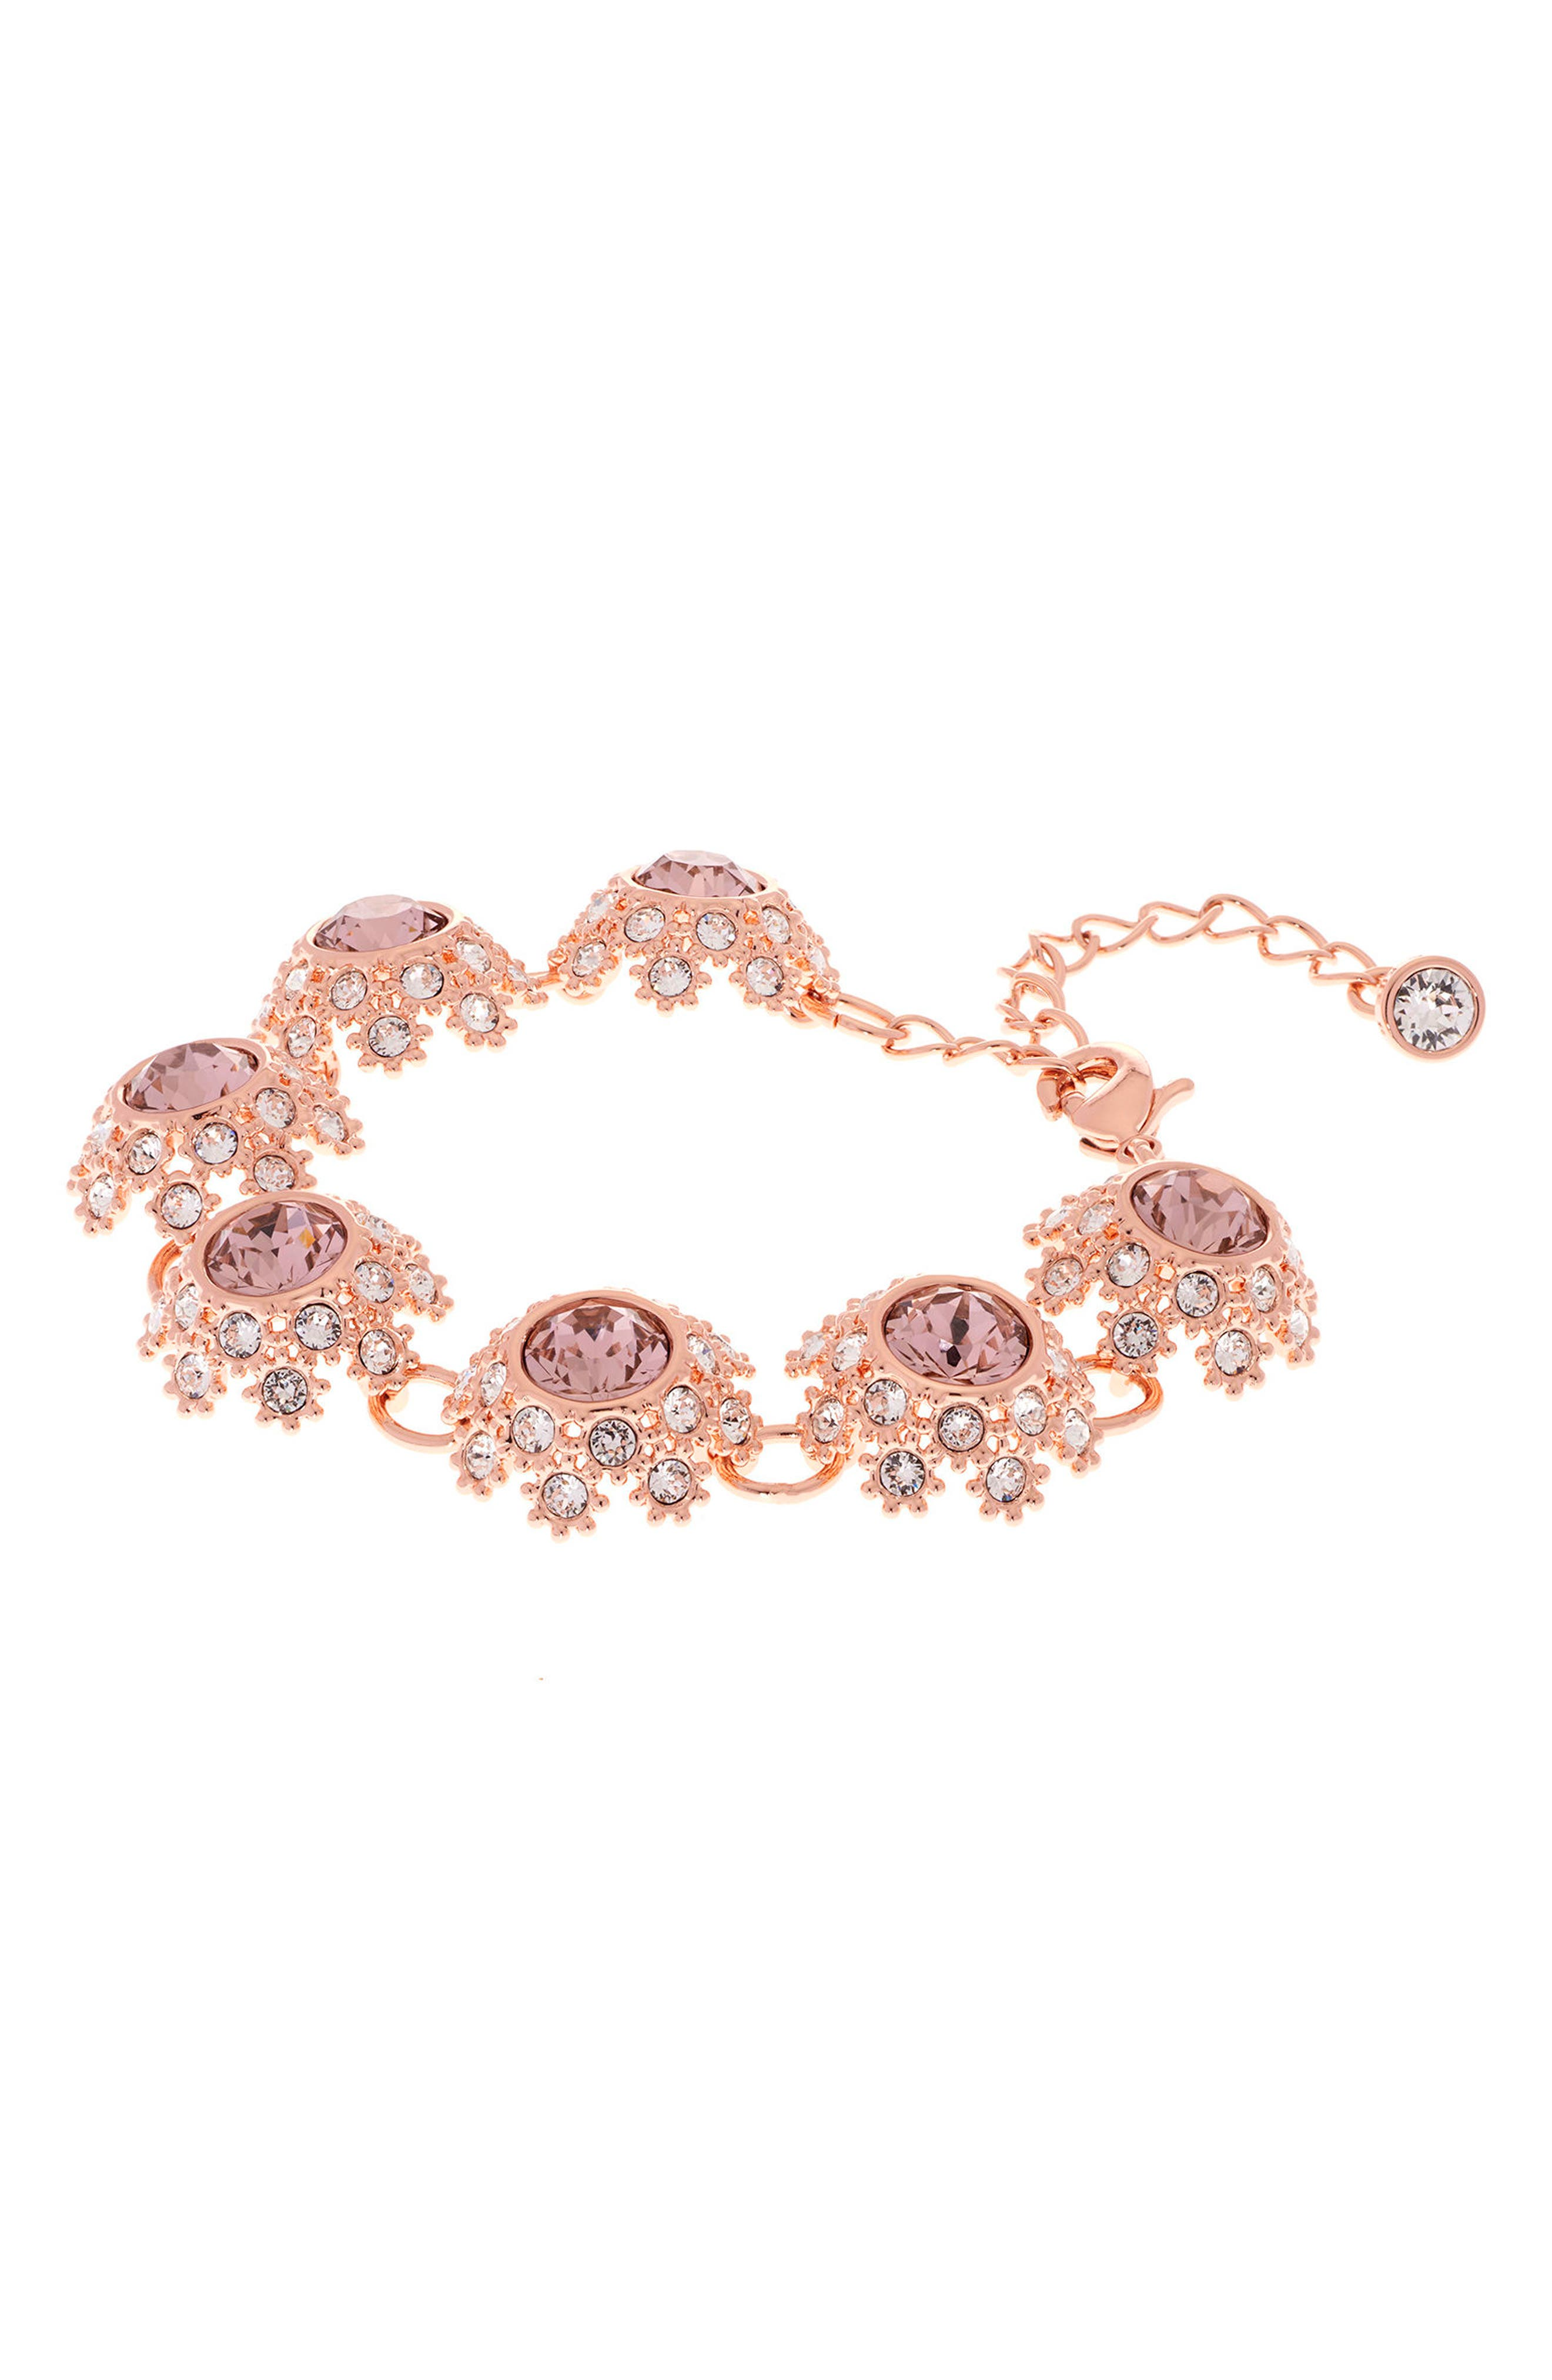 Crystal Daisy Lace Station Bracelet,                             Alternate thumbnail 2, color,                             Pink